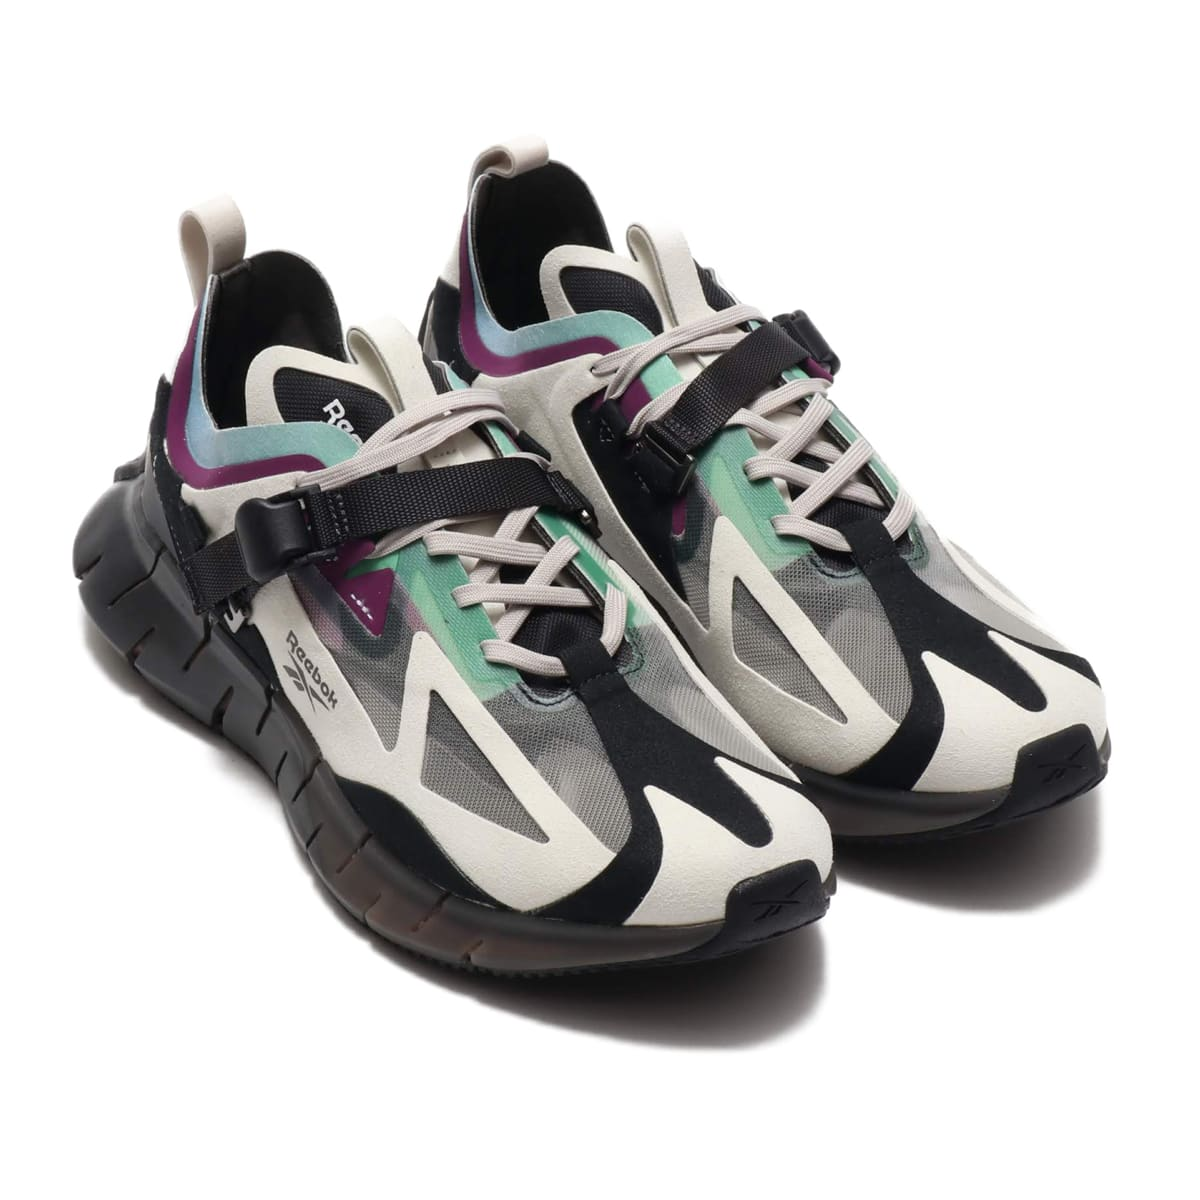 Reebok ZIG KINETICA IAN PALEY SAND STONE/BLACK/EMERALD ICE 19FW-S_photo_large